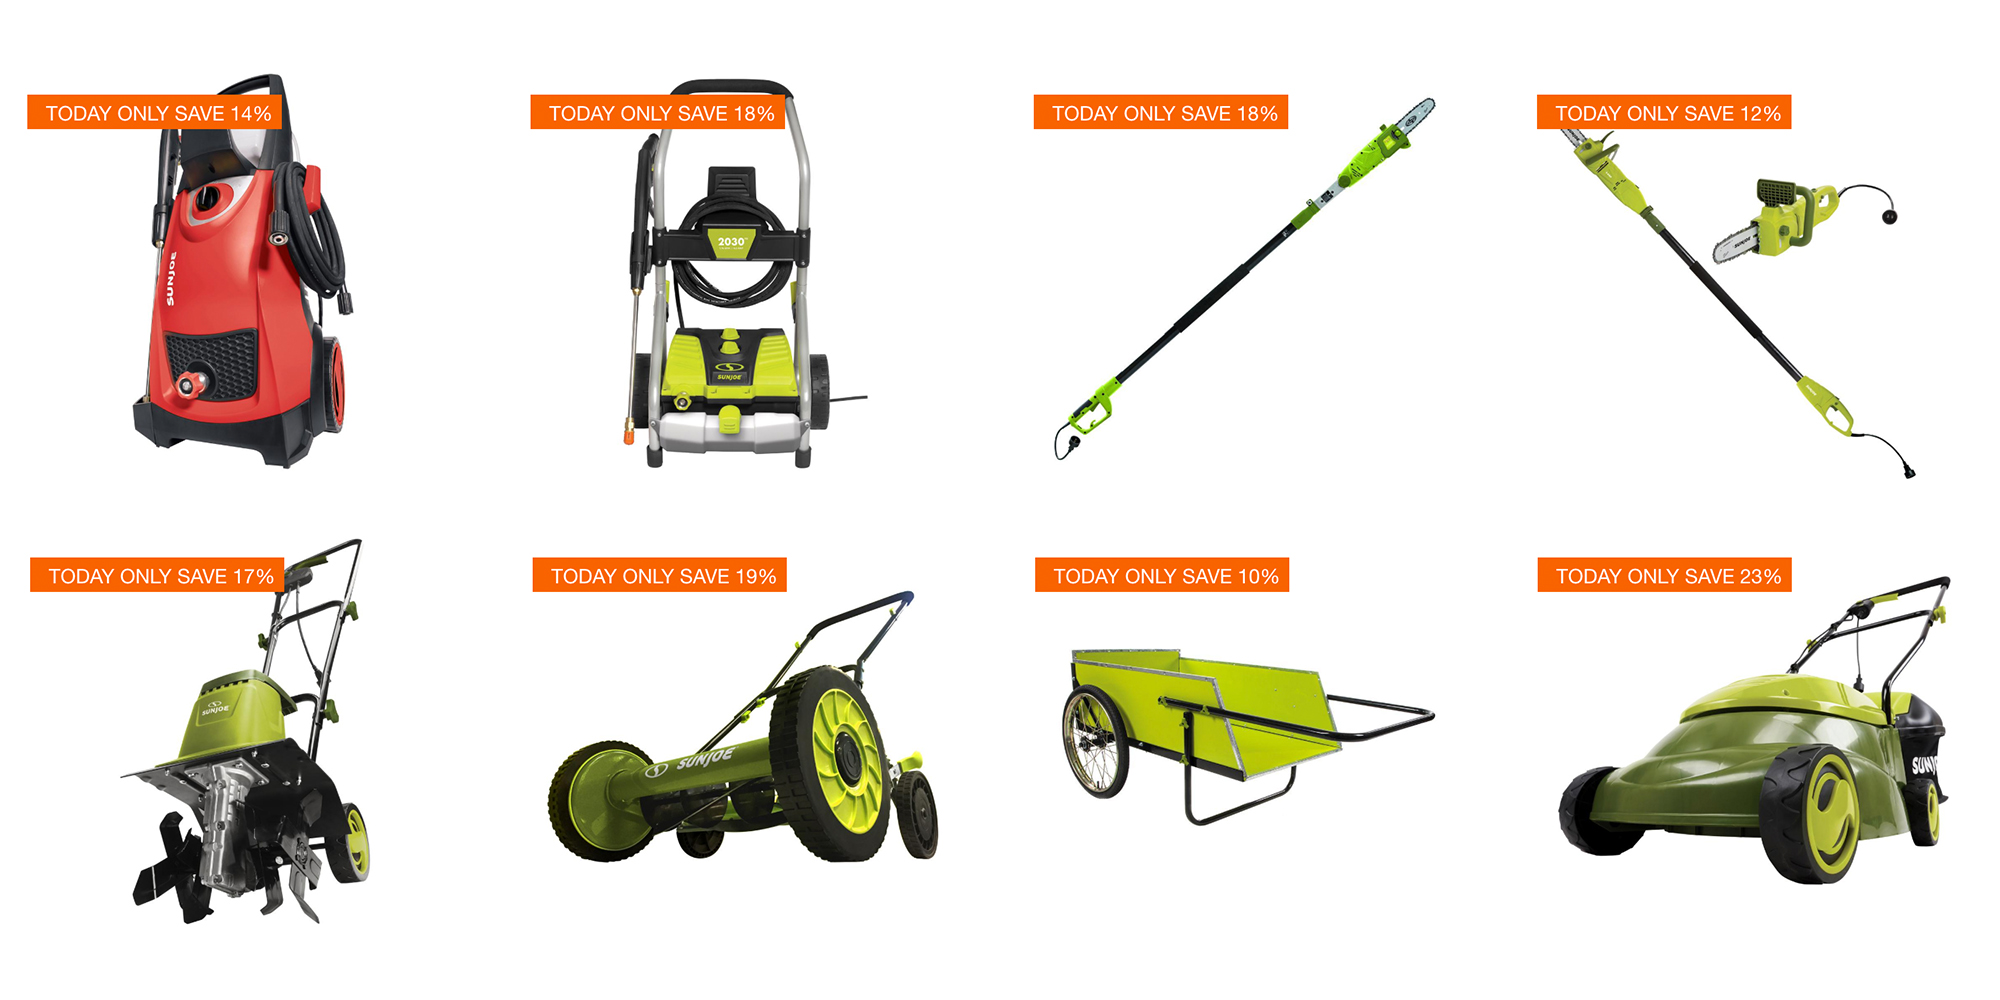 Home Depot's 1-day outdoor electric power tool sale highlights the best Earth Day deals